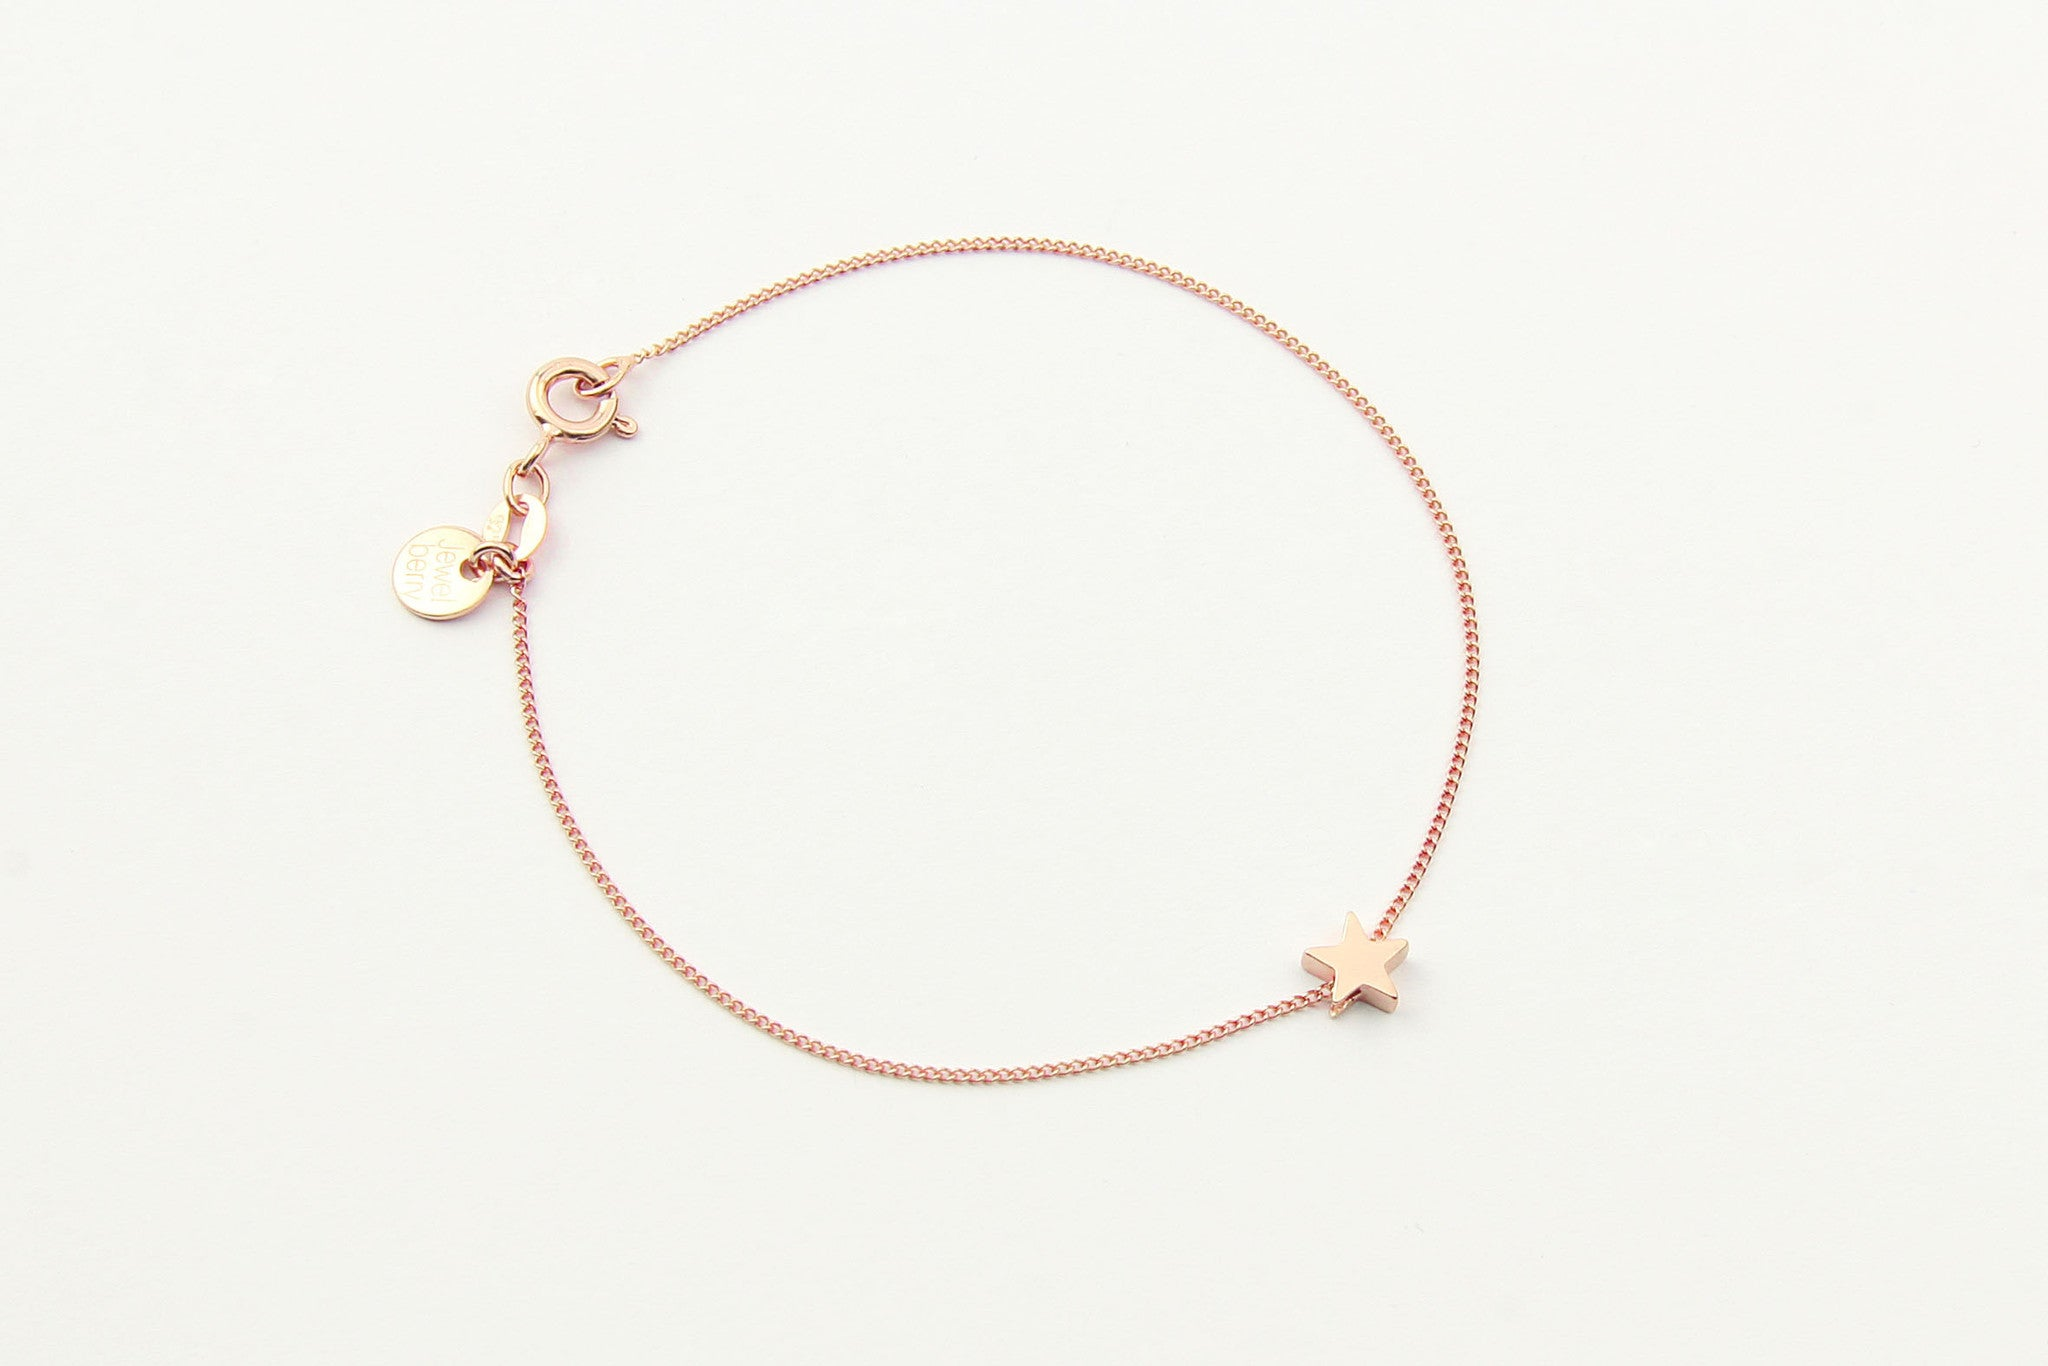 jewelberry armband bracelet little star rose gold plated sterling silver fine jewelry handmade with love fairtrade curb chain